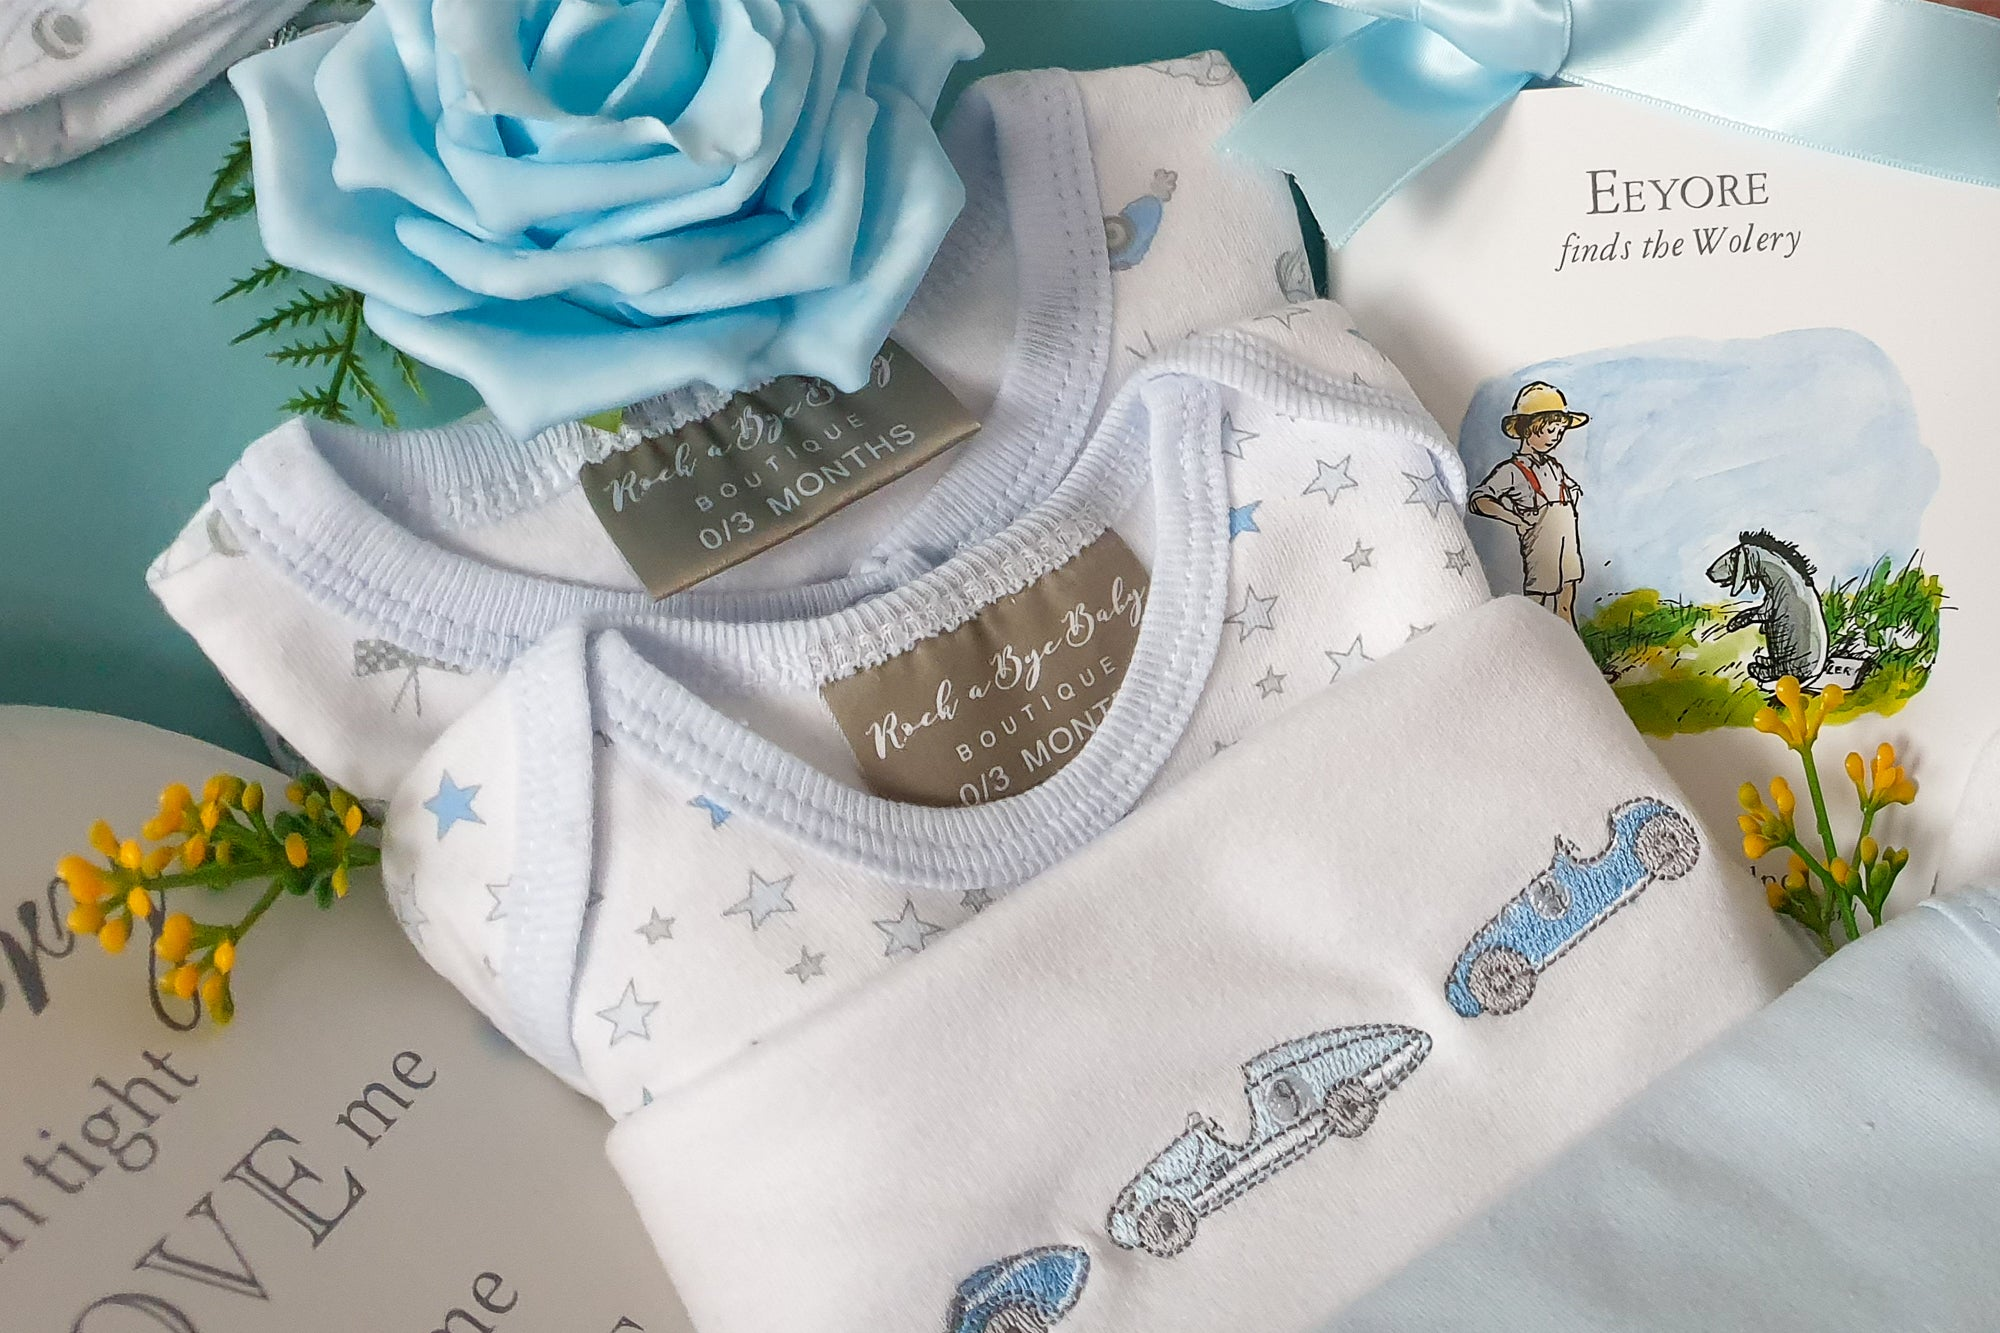 CARS And STARS Deluxe Baby Hamper, Sleepsuit, Two Bodysuits, Hat, Nursery Plaque, New Mum Hamper, Baby Shower Gift, Keepsake Gift Box